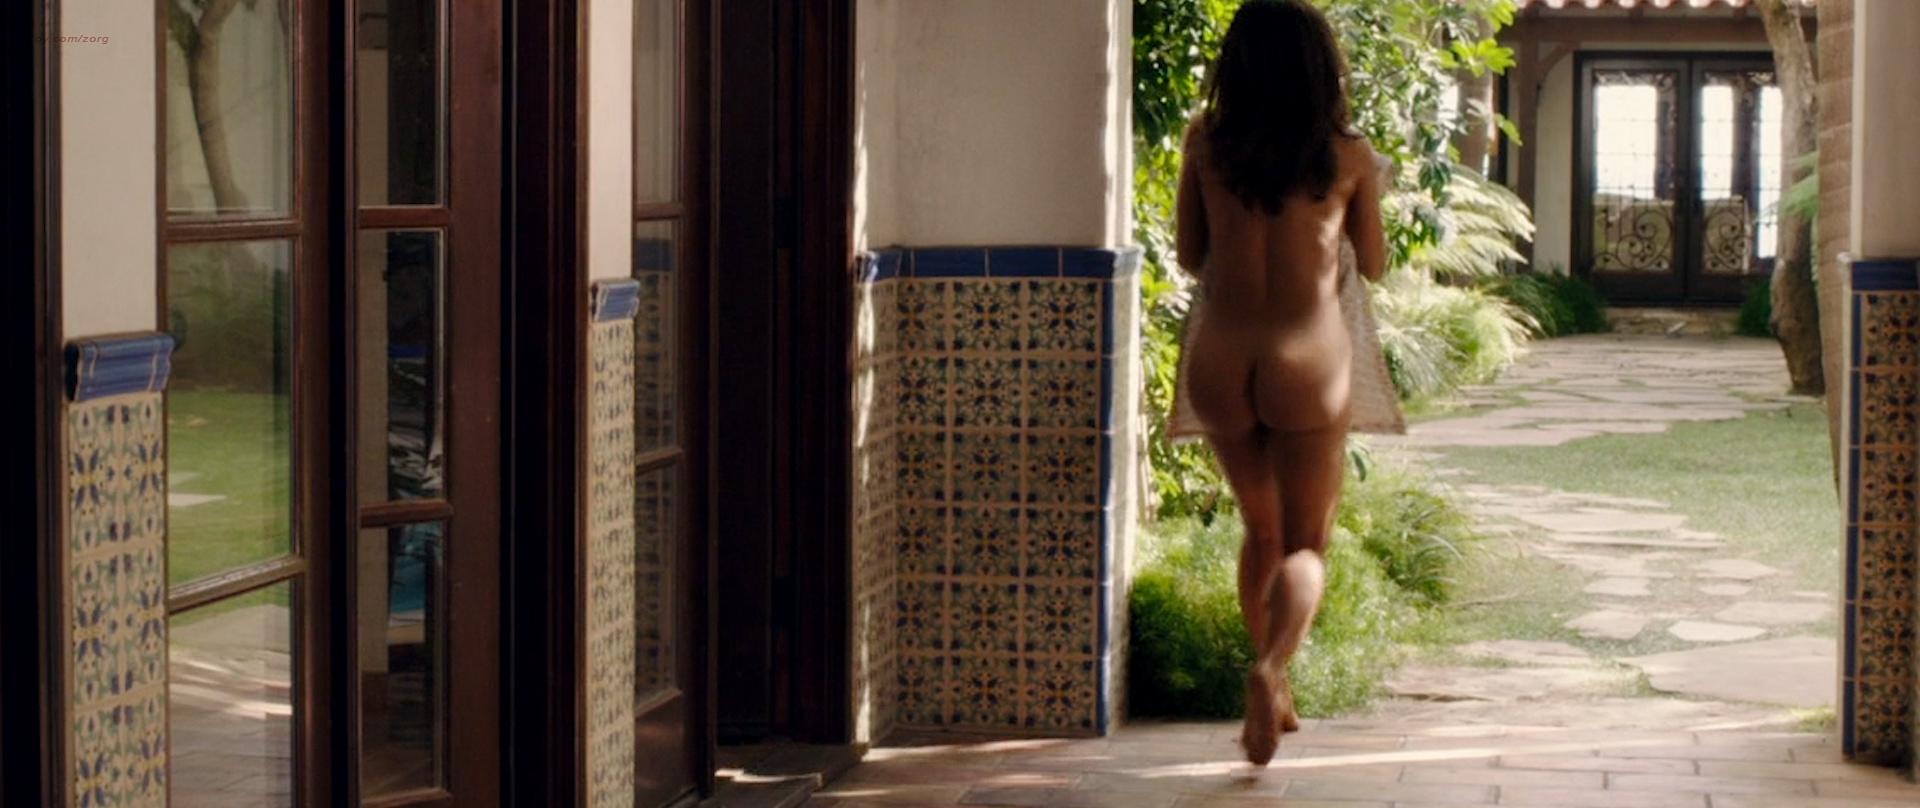 Salma Hayek nude butt Jessica Alba hot bikini and Lindsey Sporrer nude butt - Some Kind Of Beautiful (2014) hd1080p BluRay (2)